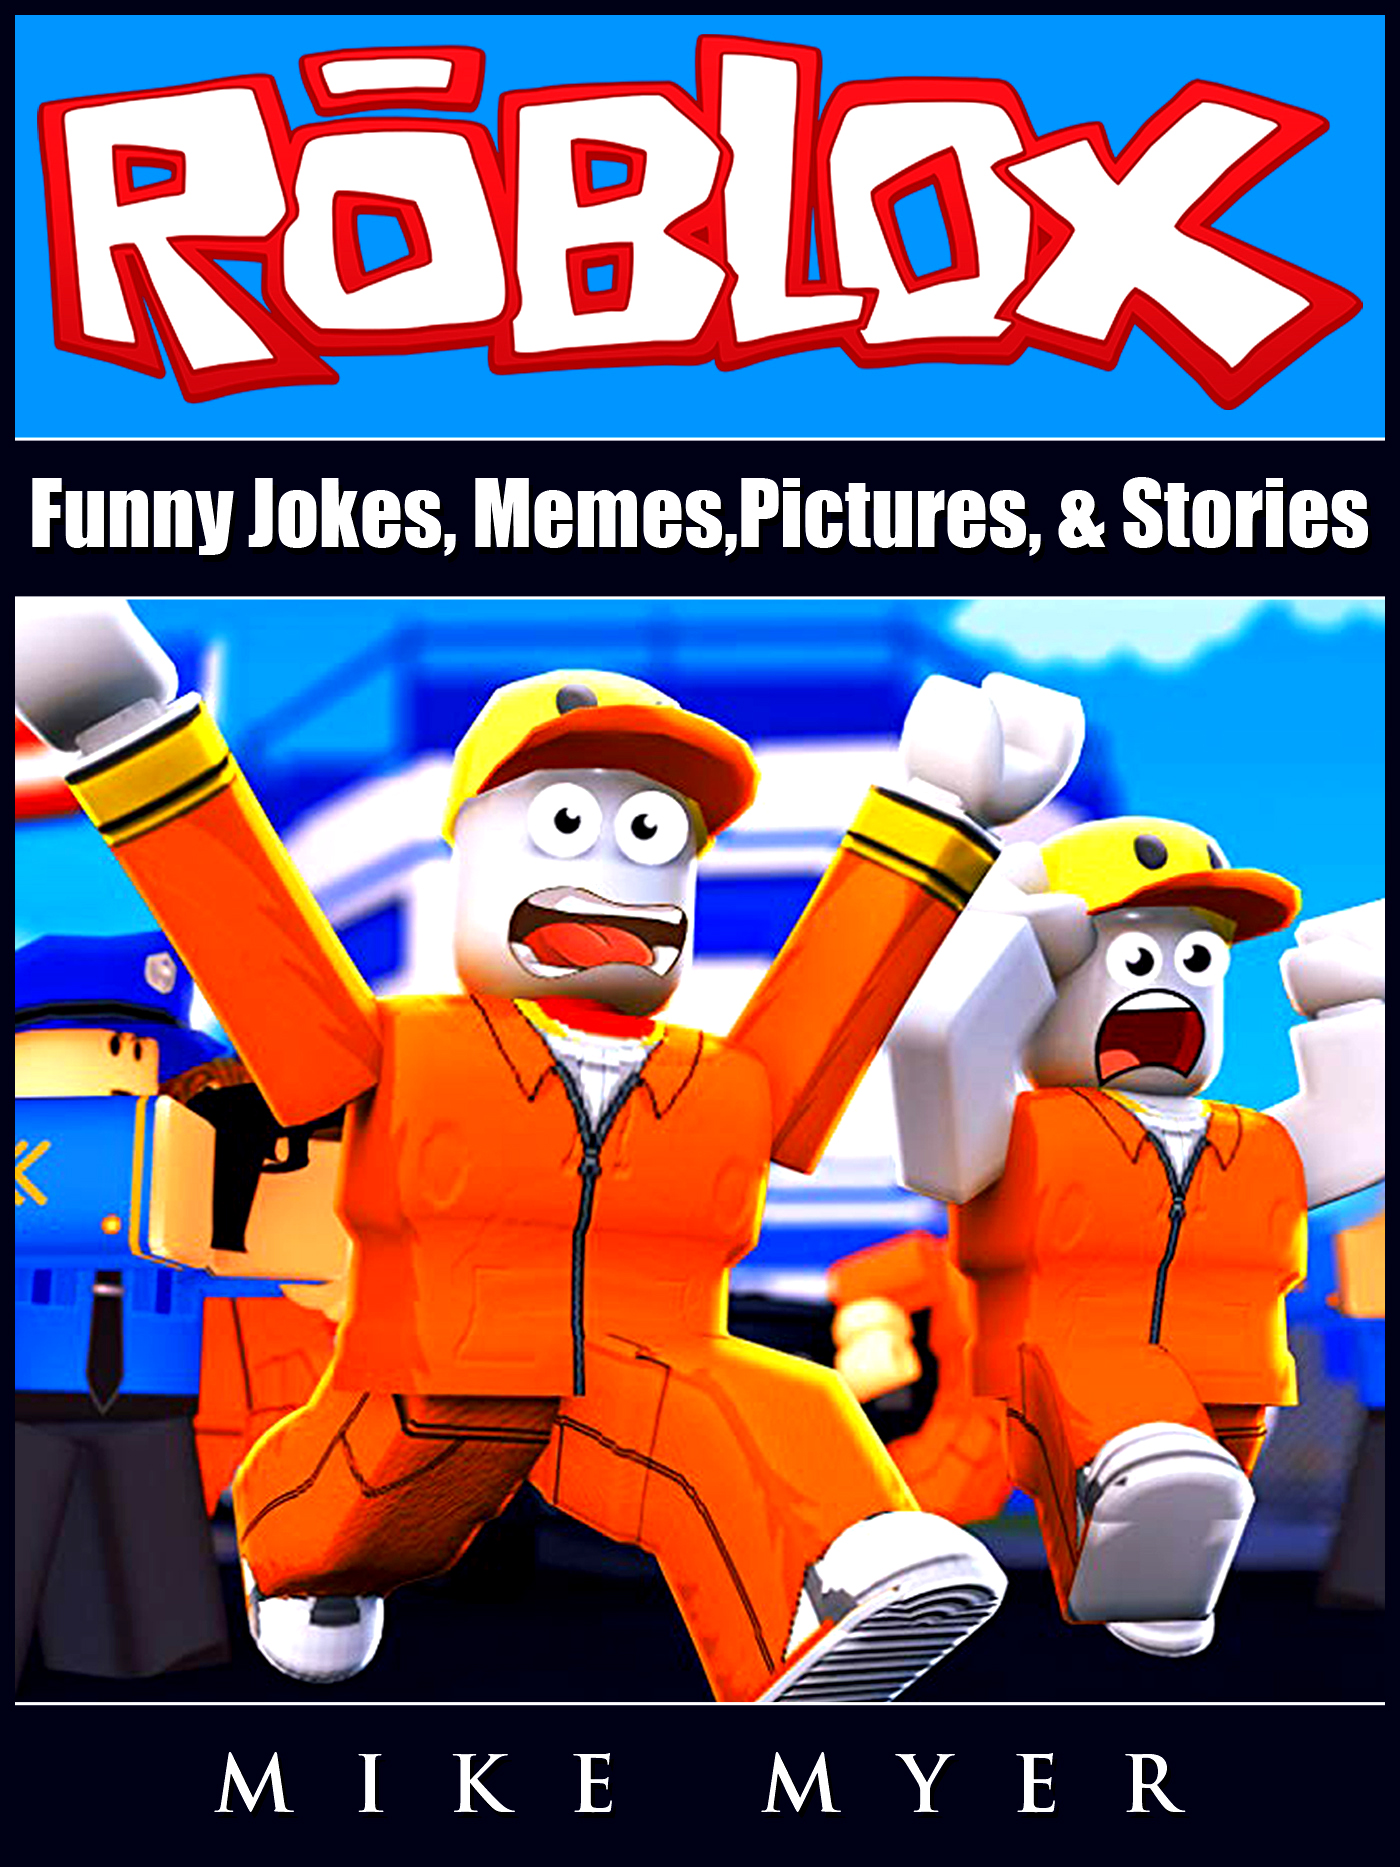 Roblox funny jokes, memes, pictures, & stories